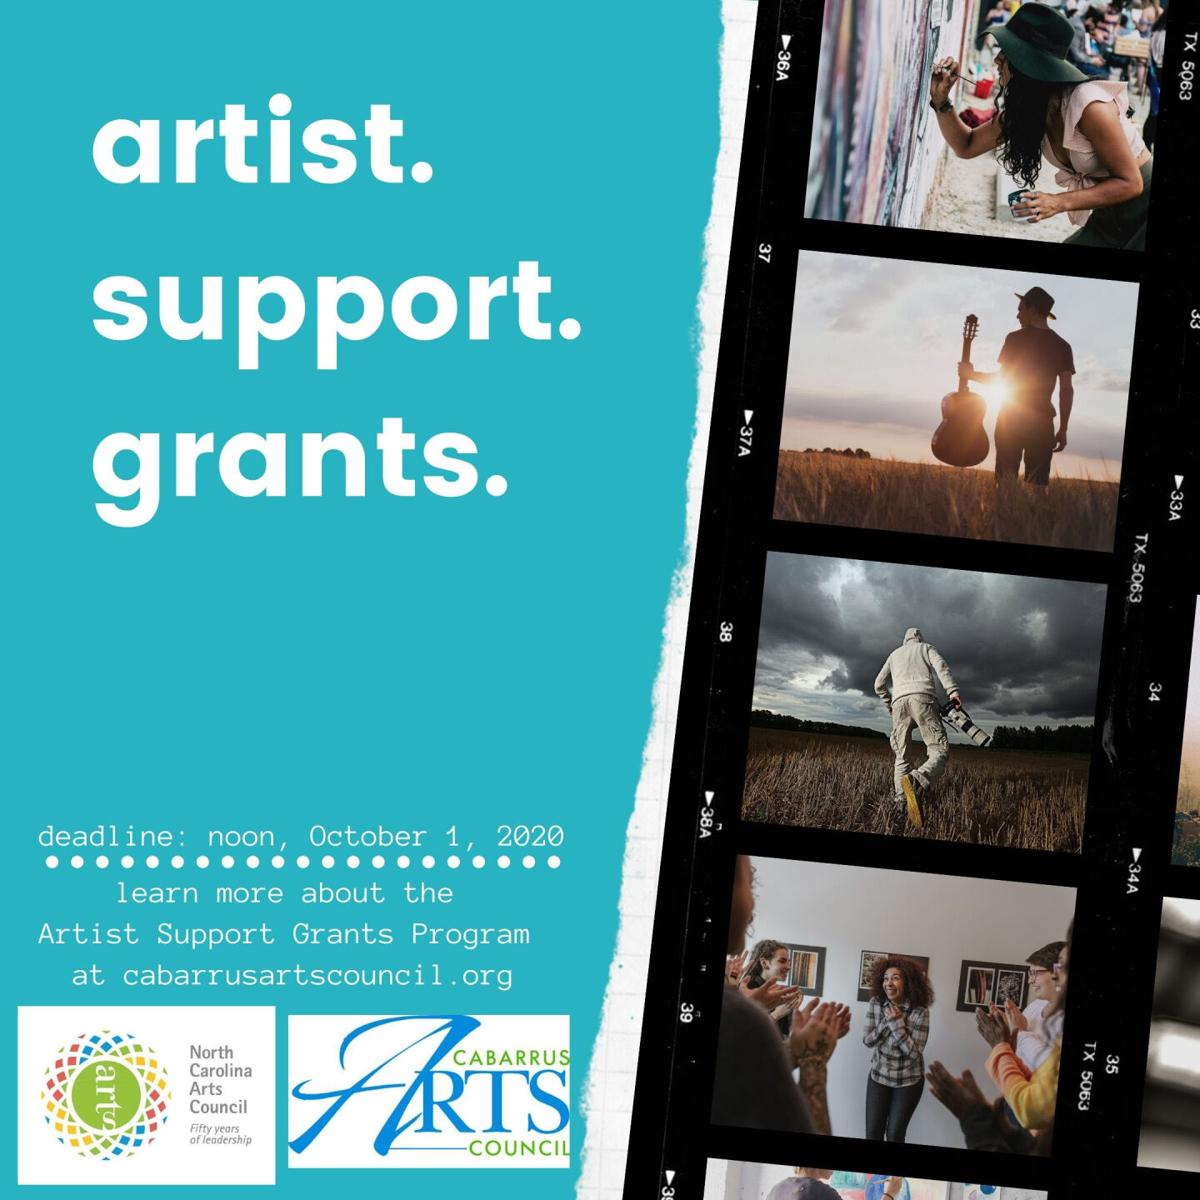 Artist Support Grants